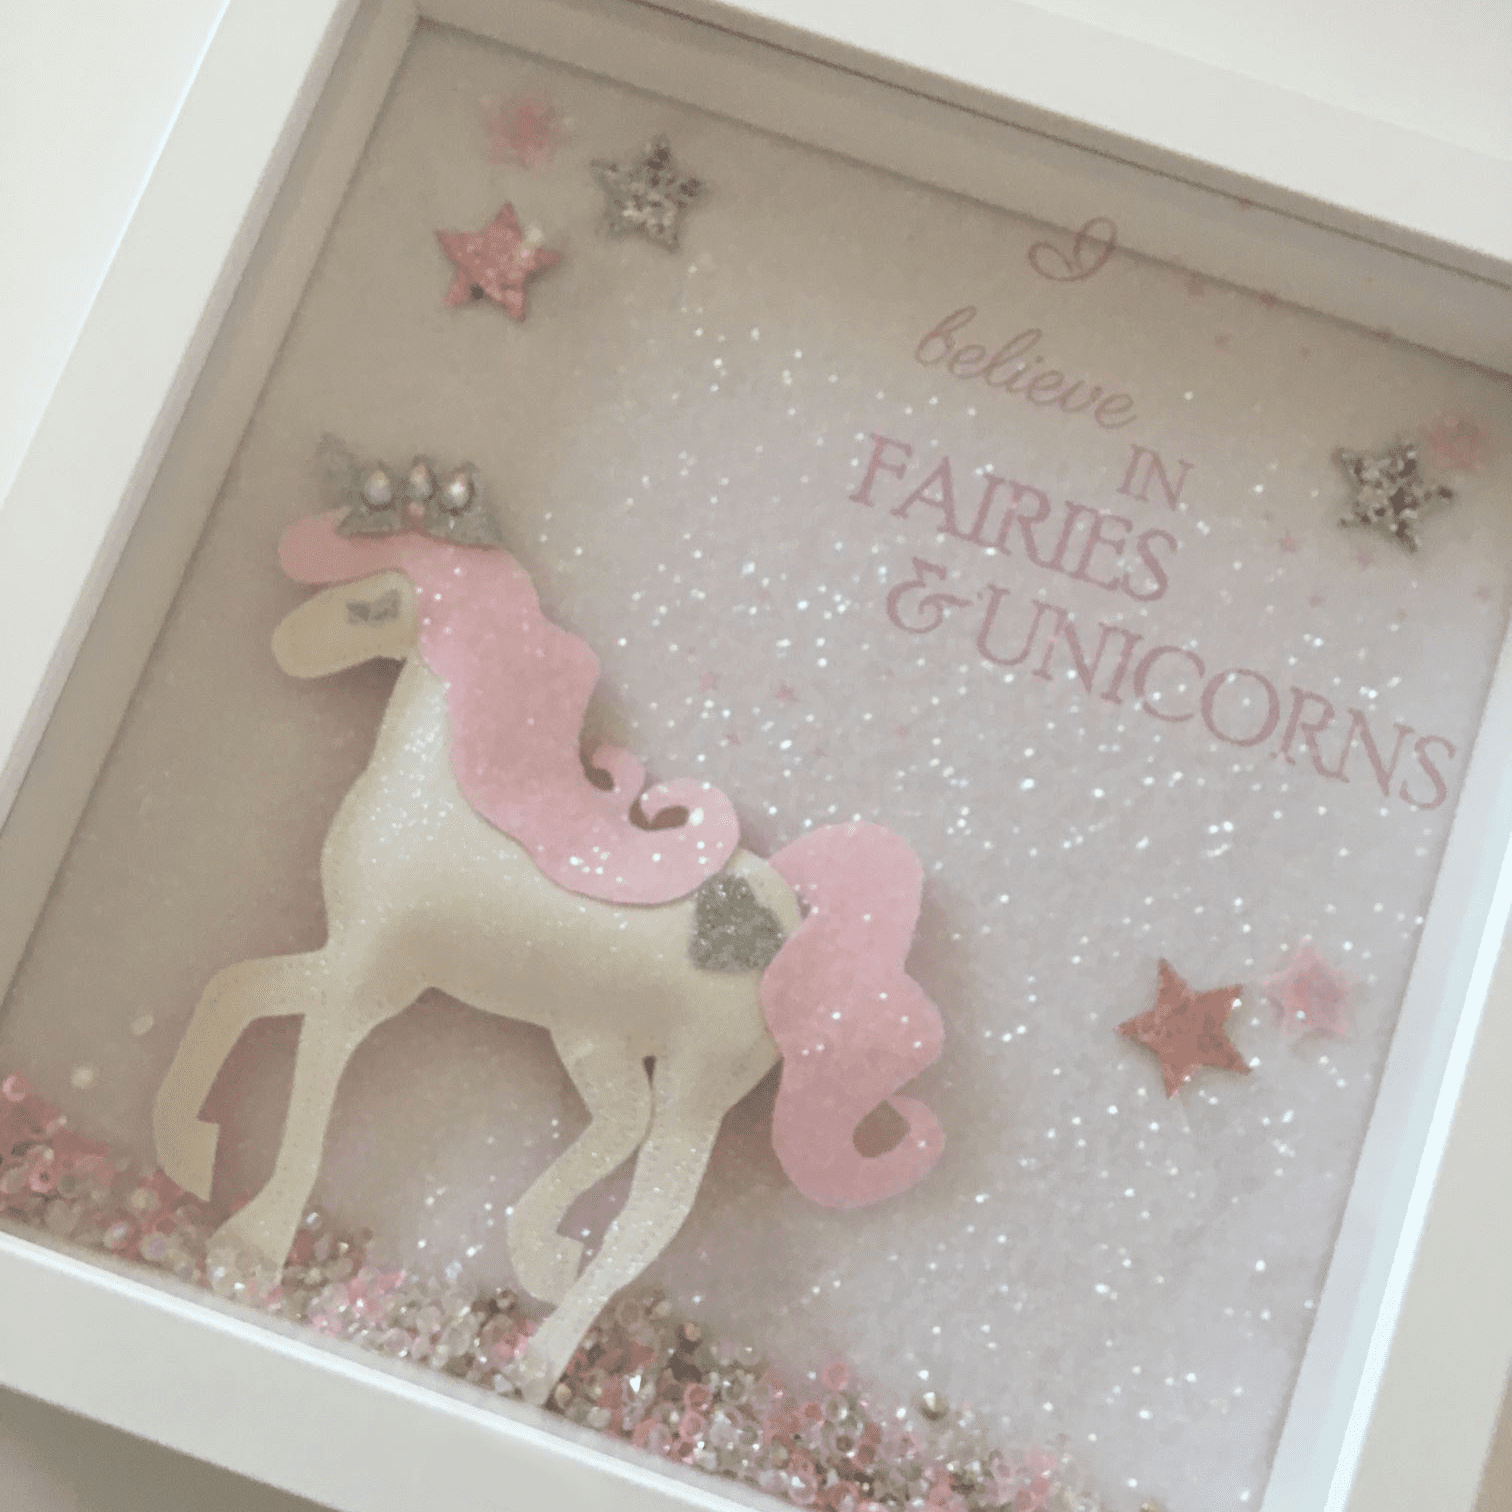 full-glitter-i-believe-in-fairies-unicorns-glitter-unicorn-frame-10547-p.png